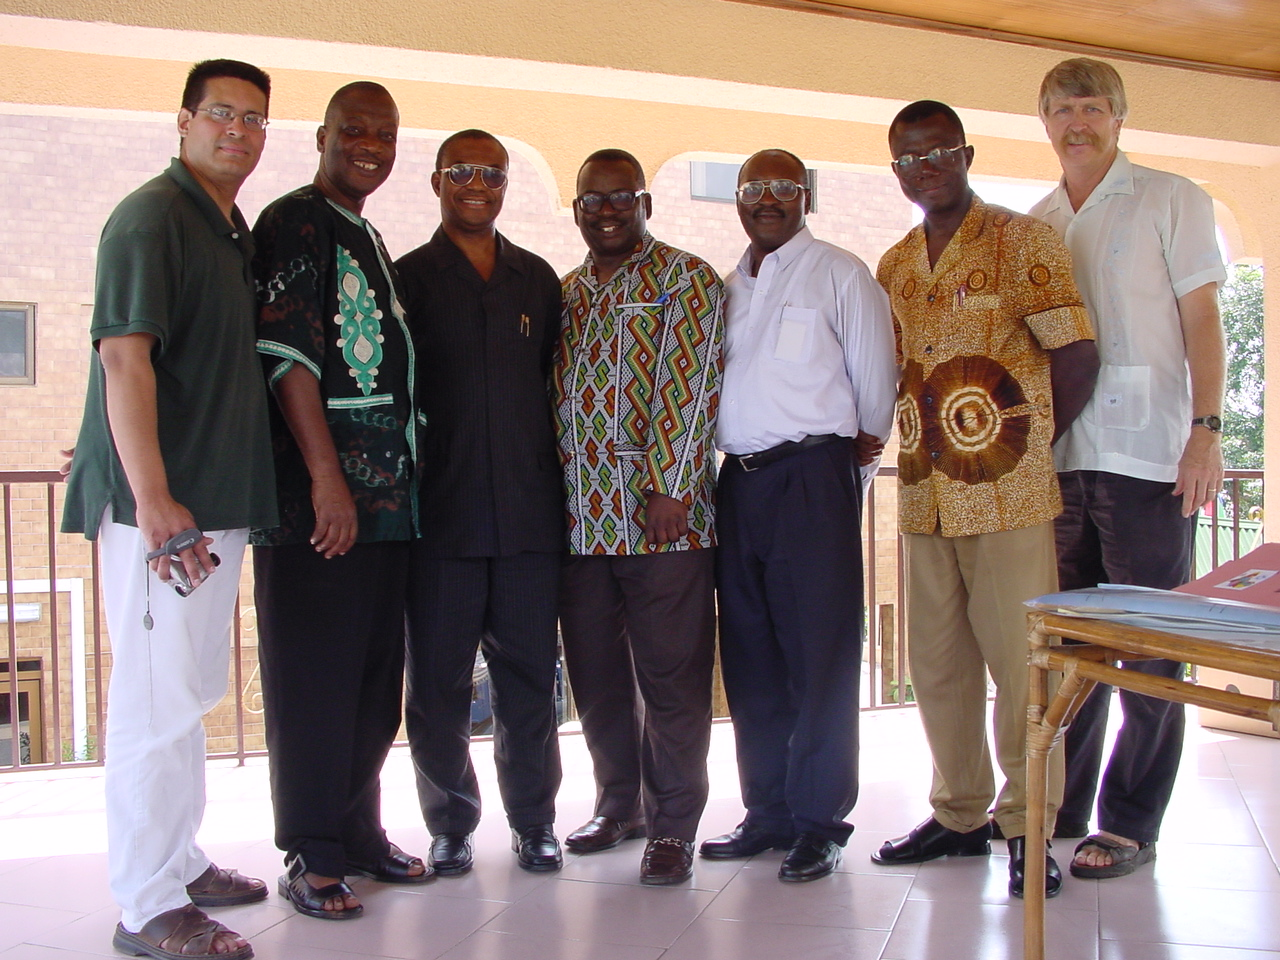 With Ghana Baptist Convention leaders and Francisco Litardo in 2001